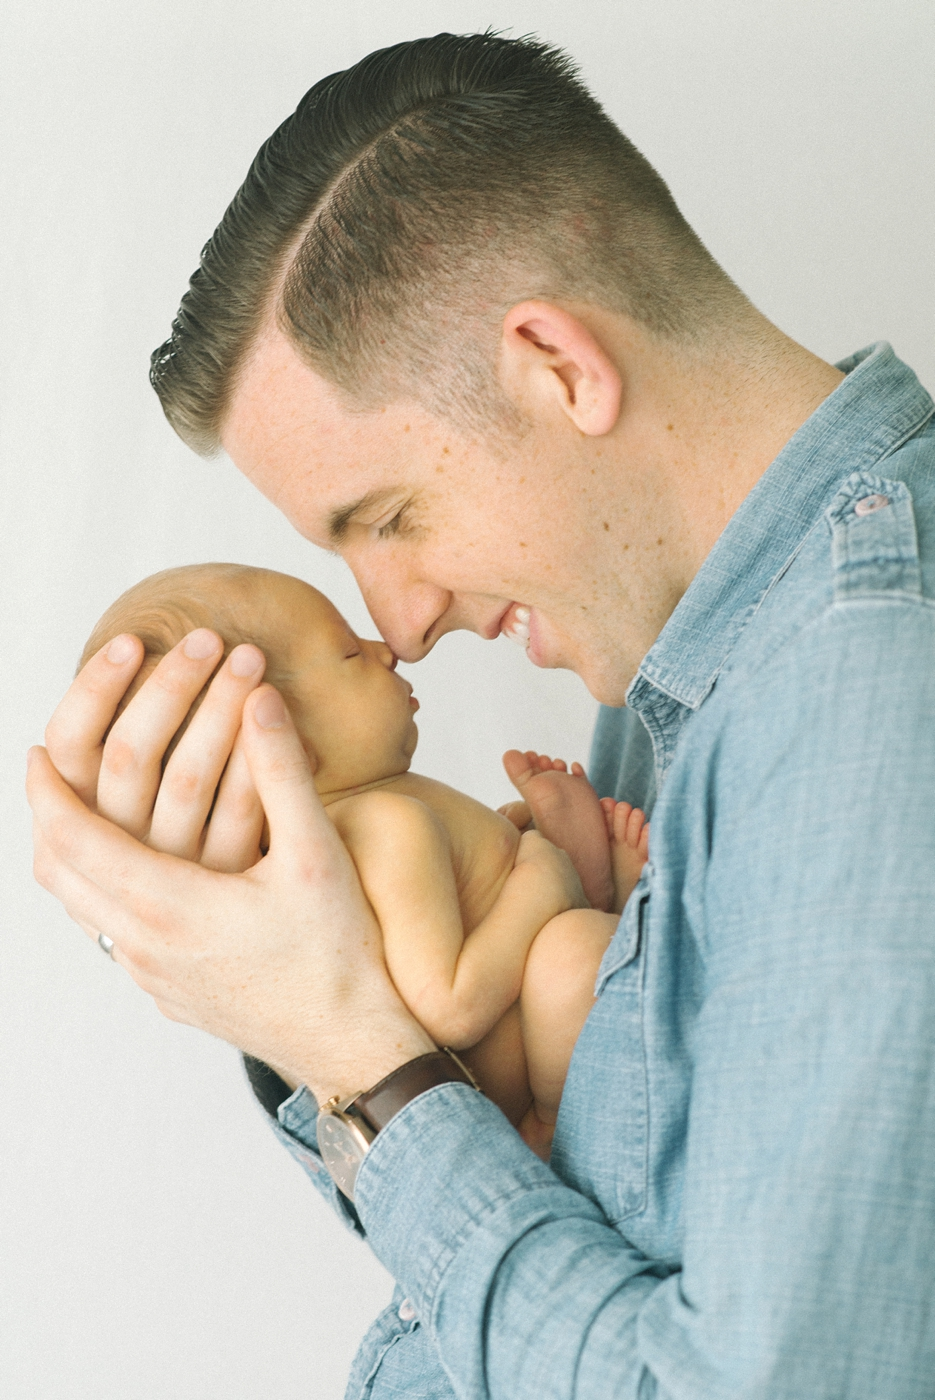 portland-oregon-newborn-photographer-shelley-marie-photo-father-and-son-baby-boy-photography-session-8